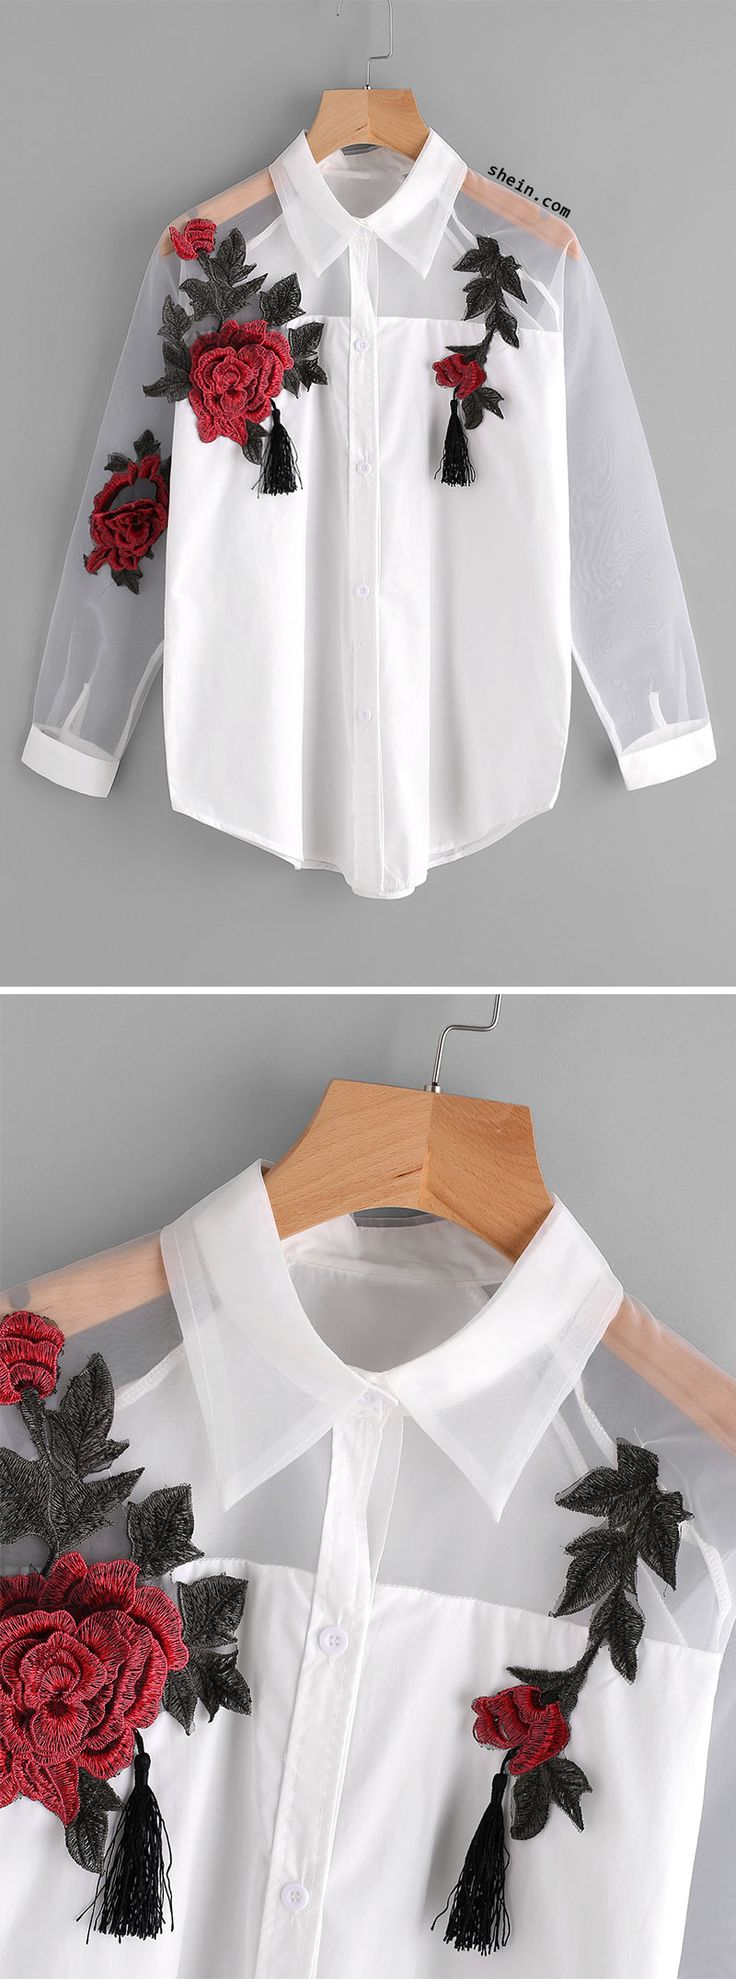 Appliques Tassel Detail Shirt With Sheer Mesh Panel. Two colors available.